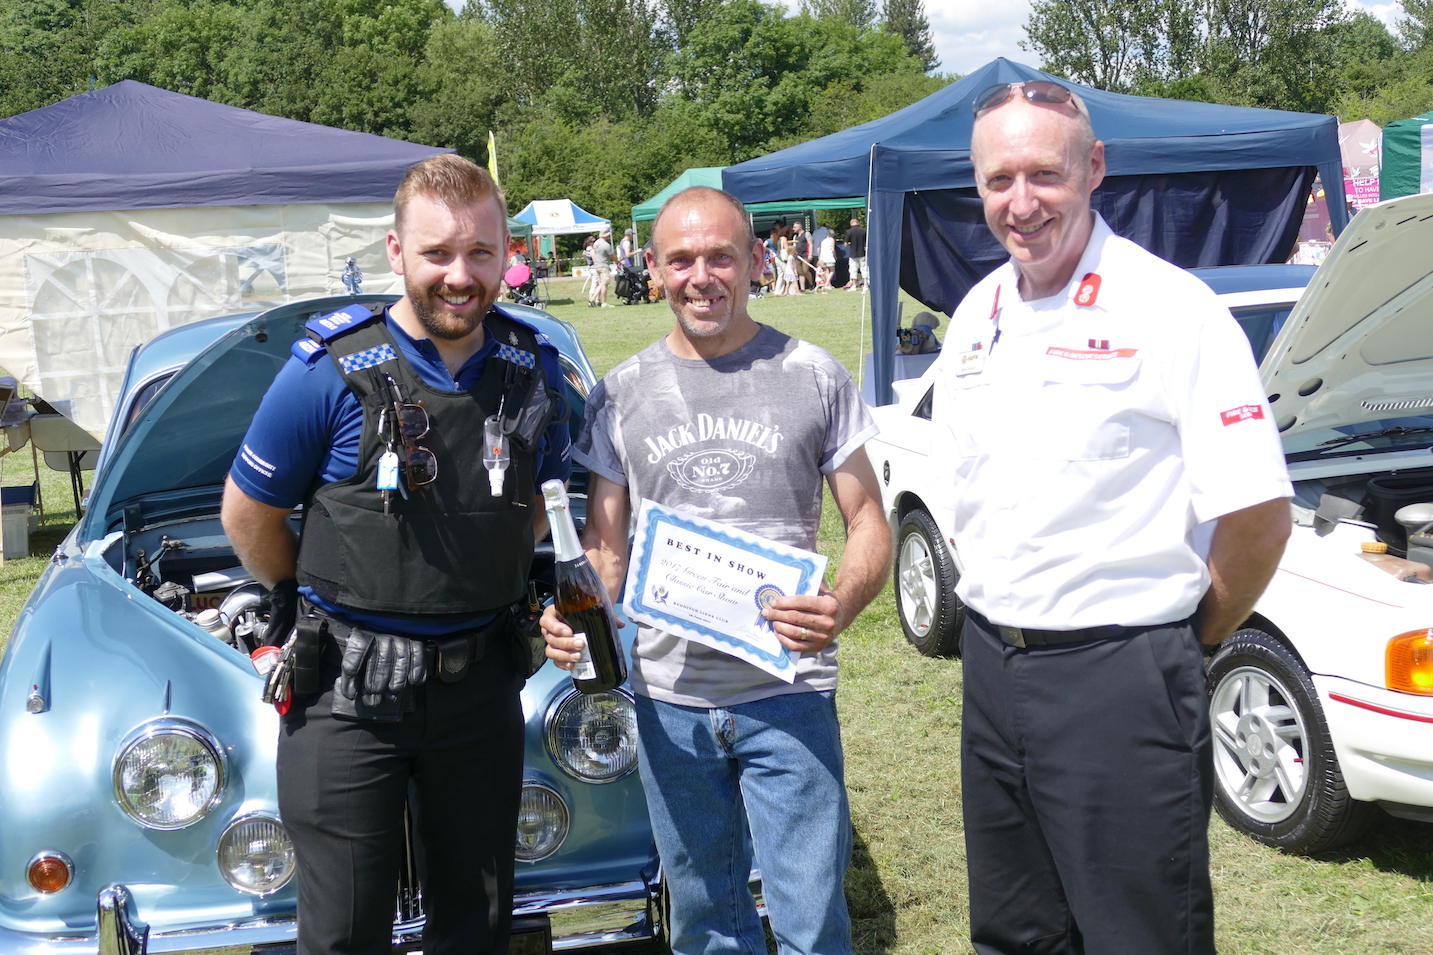 Judges from the Fire and Police Services award BEST IN SHOW to JAGUAR MKll owner